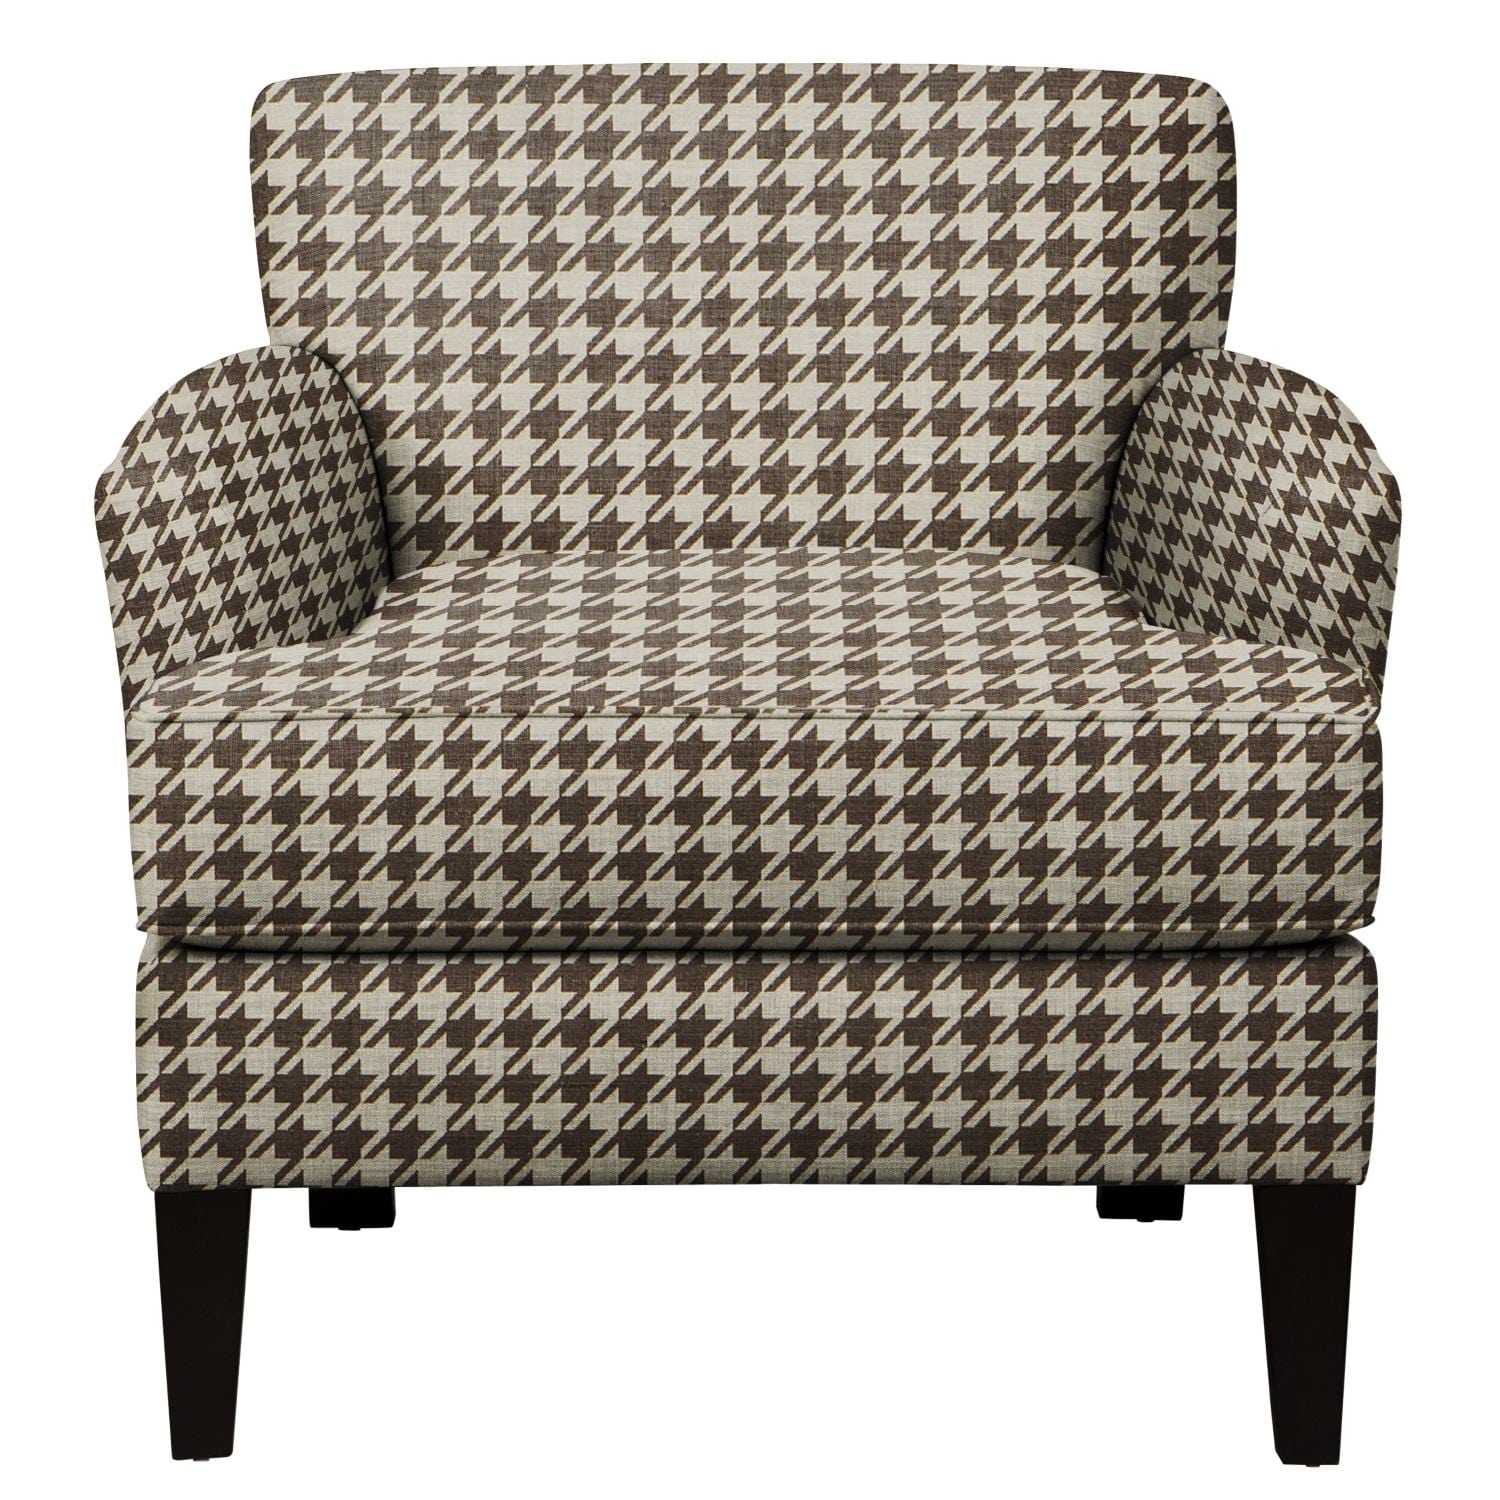 Living Room Furniture - Marcus Chair w/ Watson Chocolate Fabric